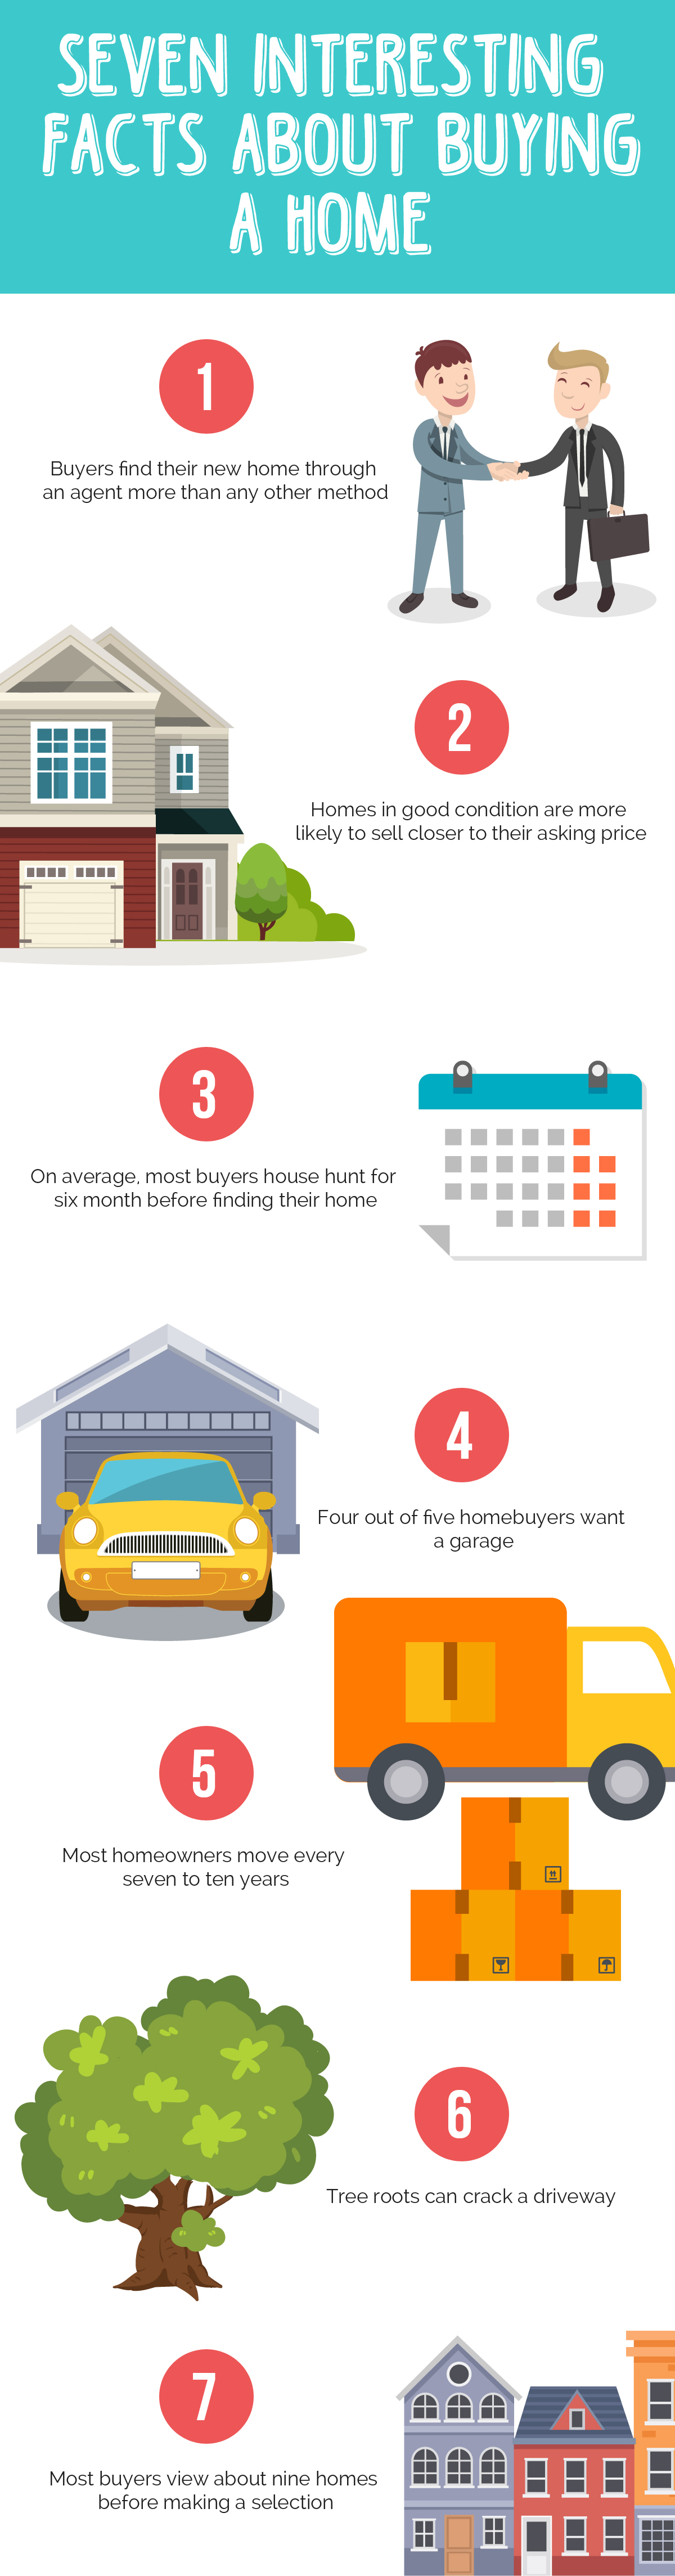 Facts about buying a home - Seven Interesting Facts About Buying A Home